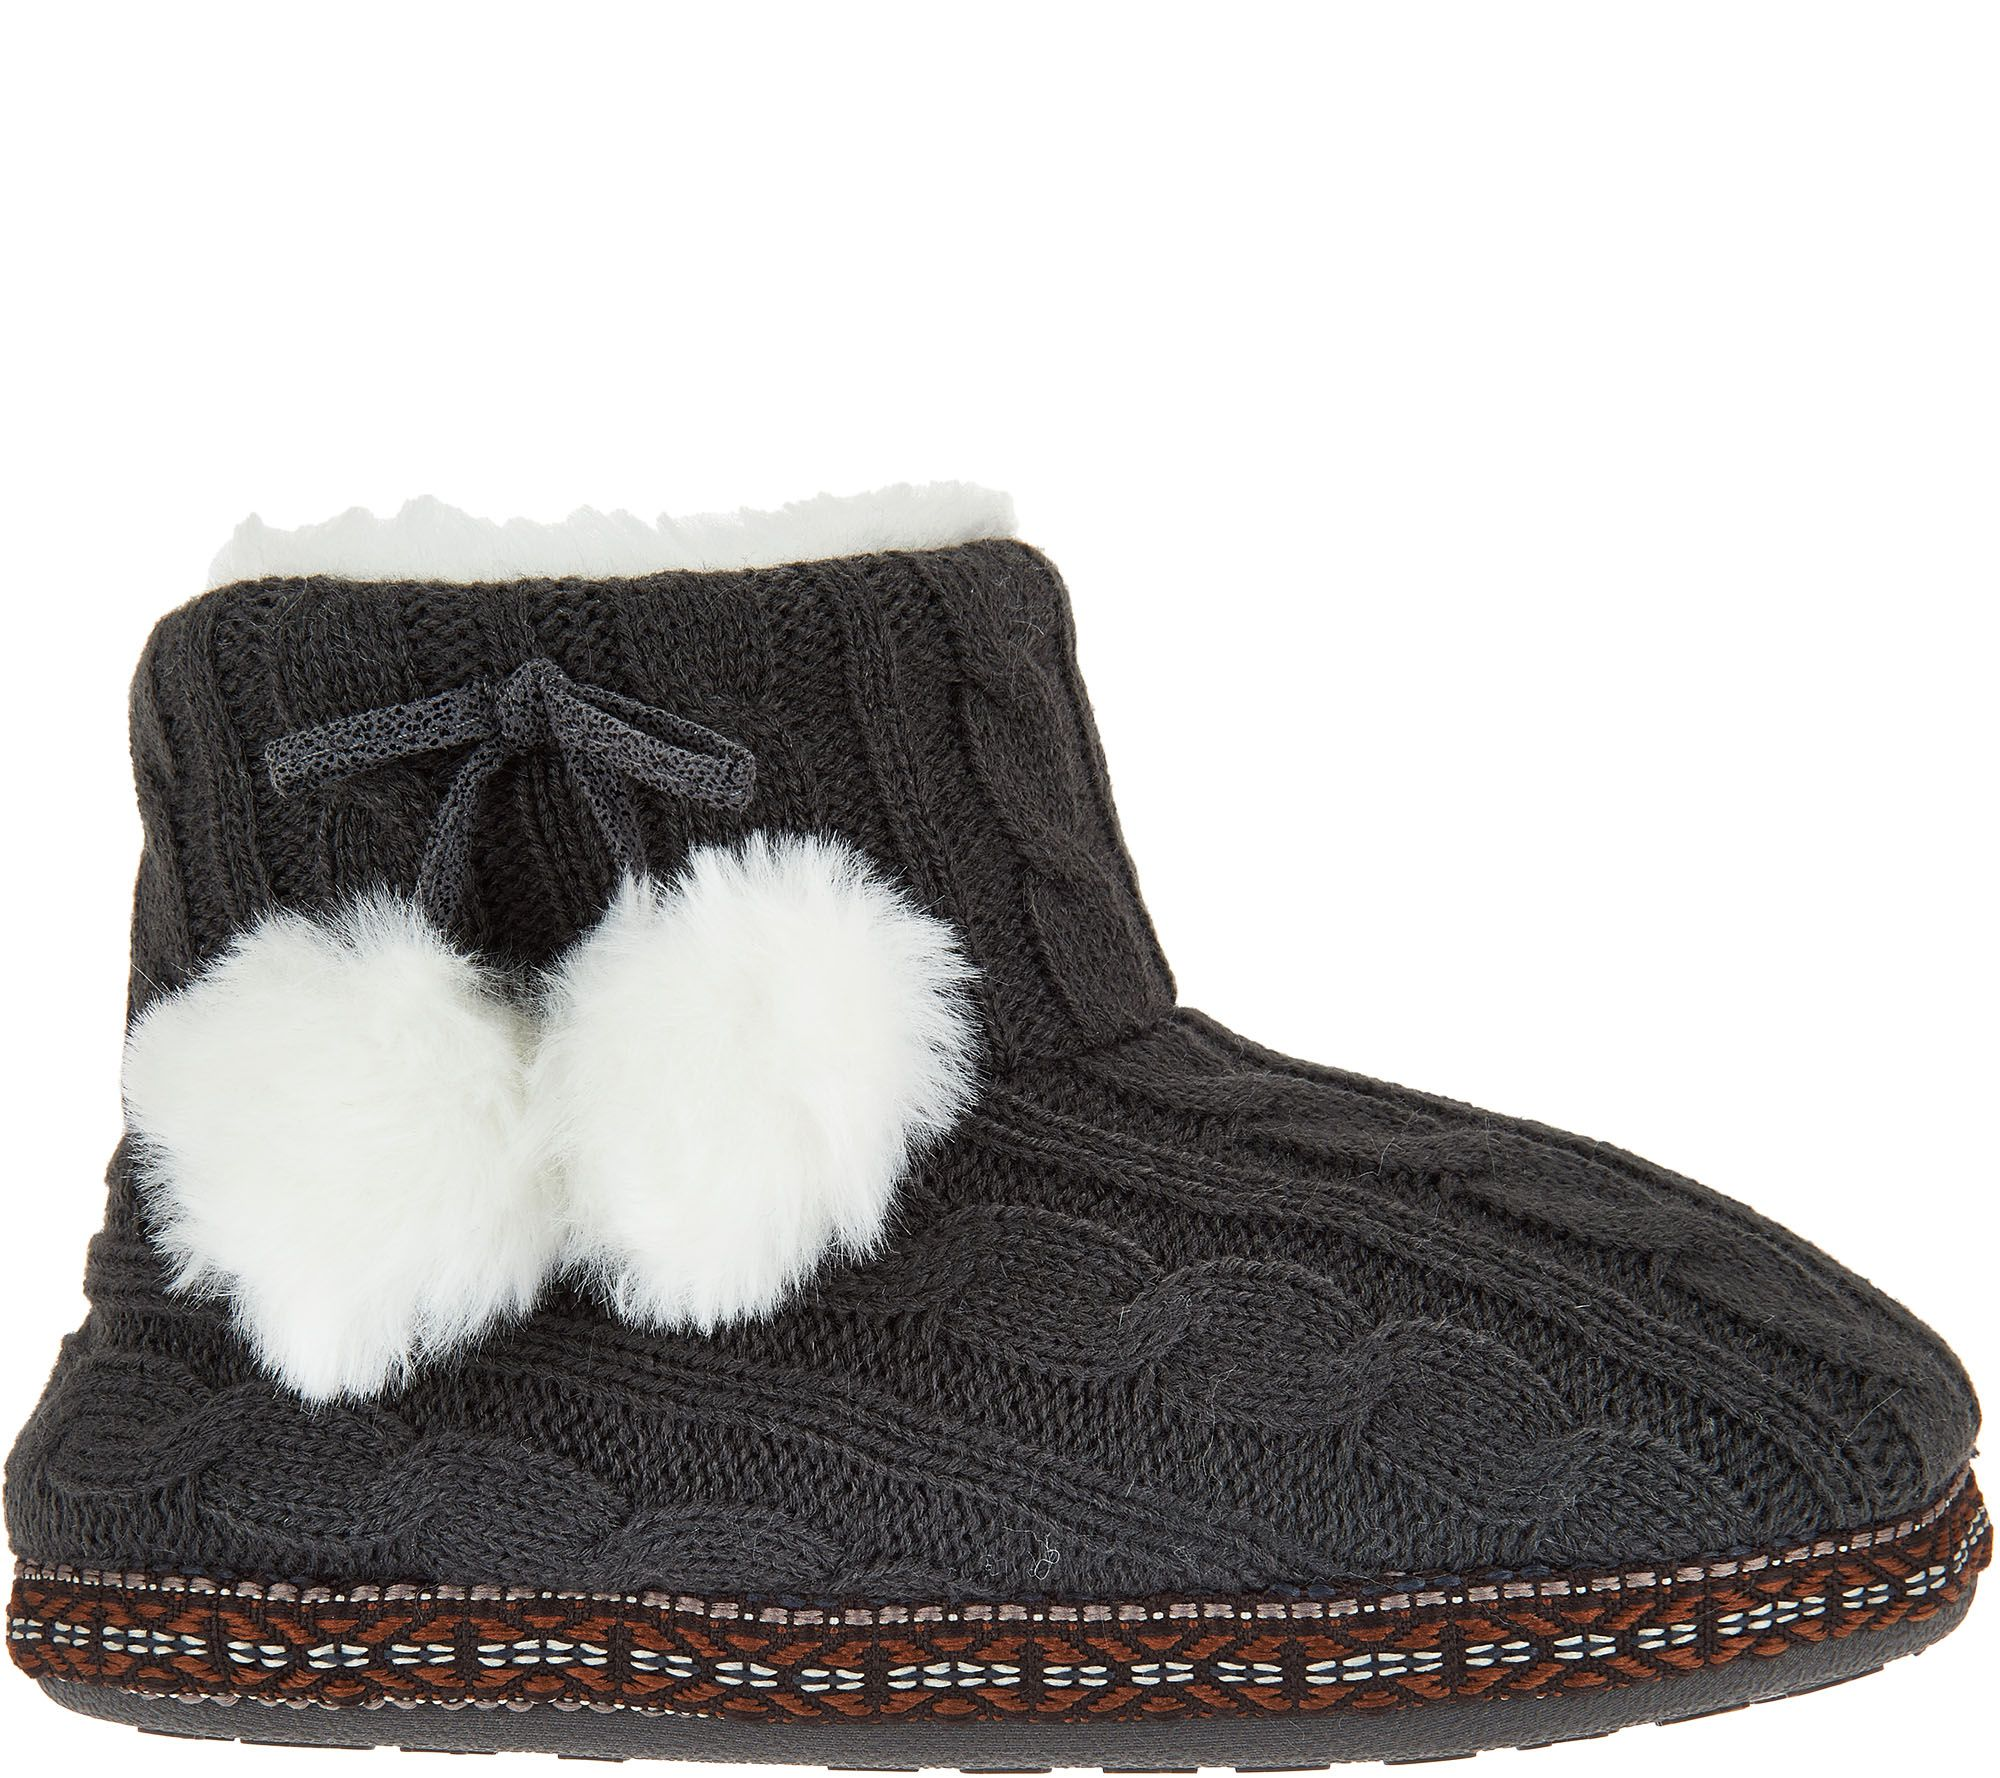 Cuddl Duds Faux Fur Lined Ankle Bootie Slipper with Foam Insole 2015 online clearance Manchester discount view cheapest price for sale eI3vuOn9h